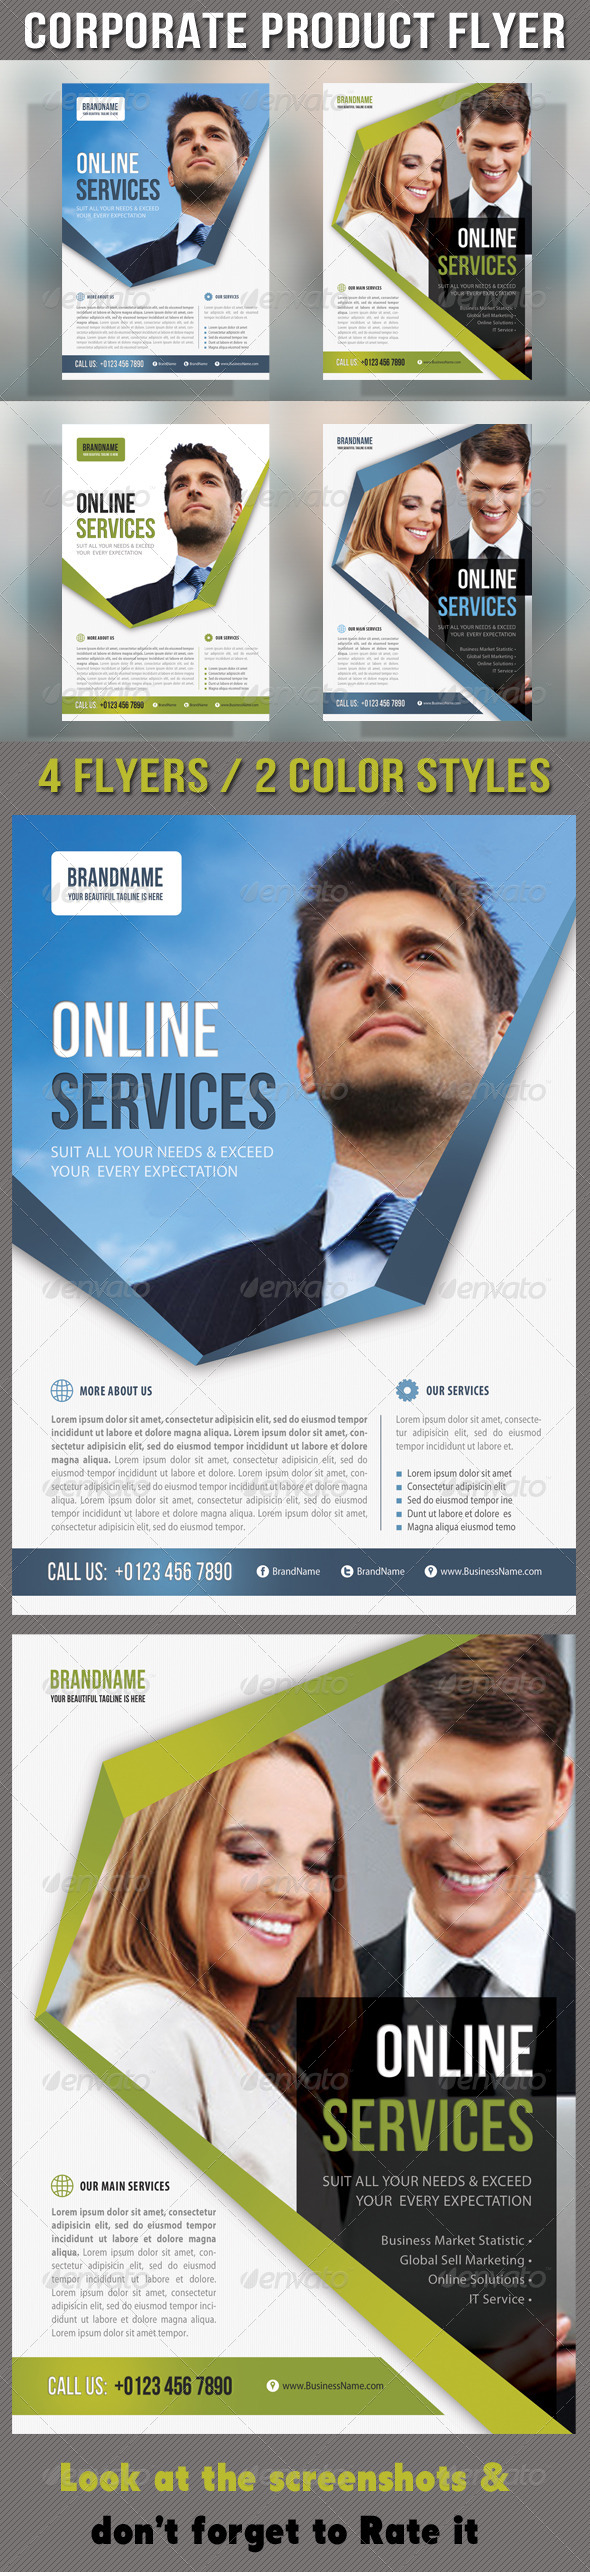 Corporate Product Flyer 60 - Corporate Flyers